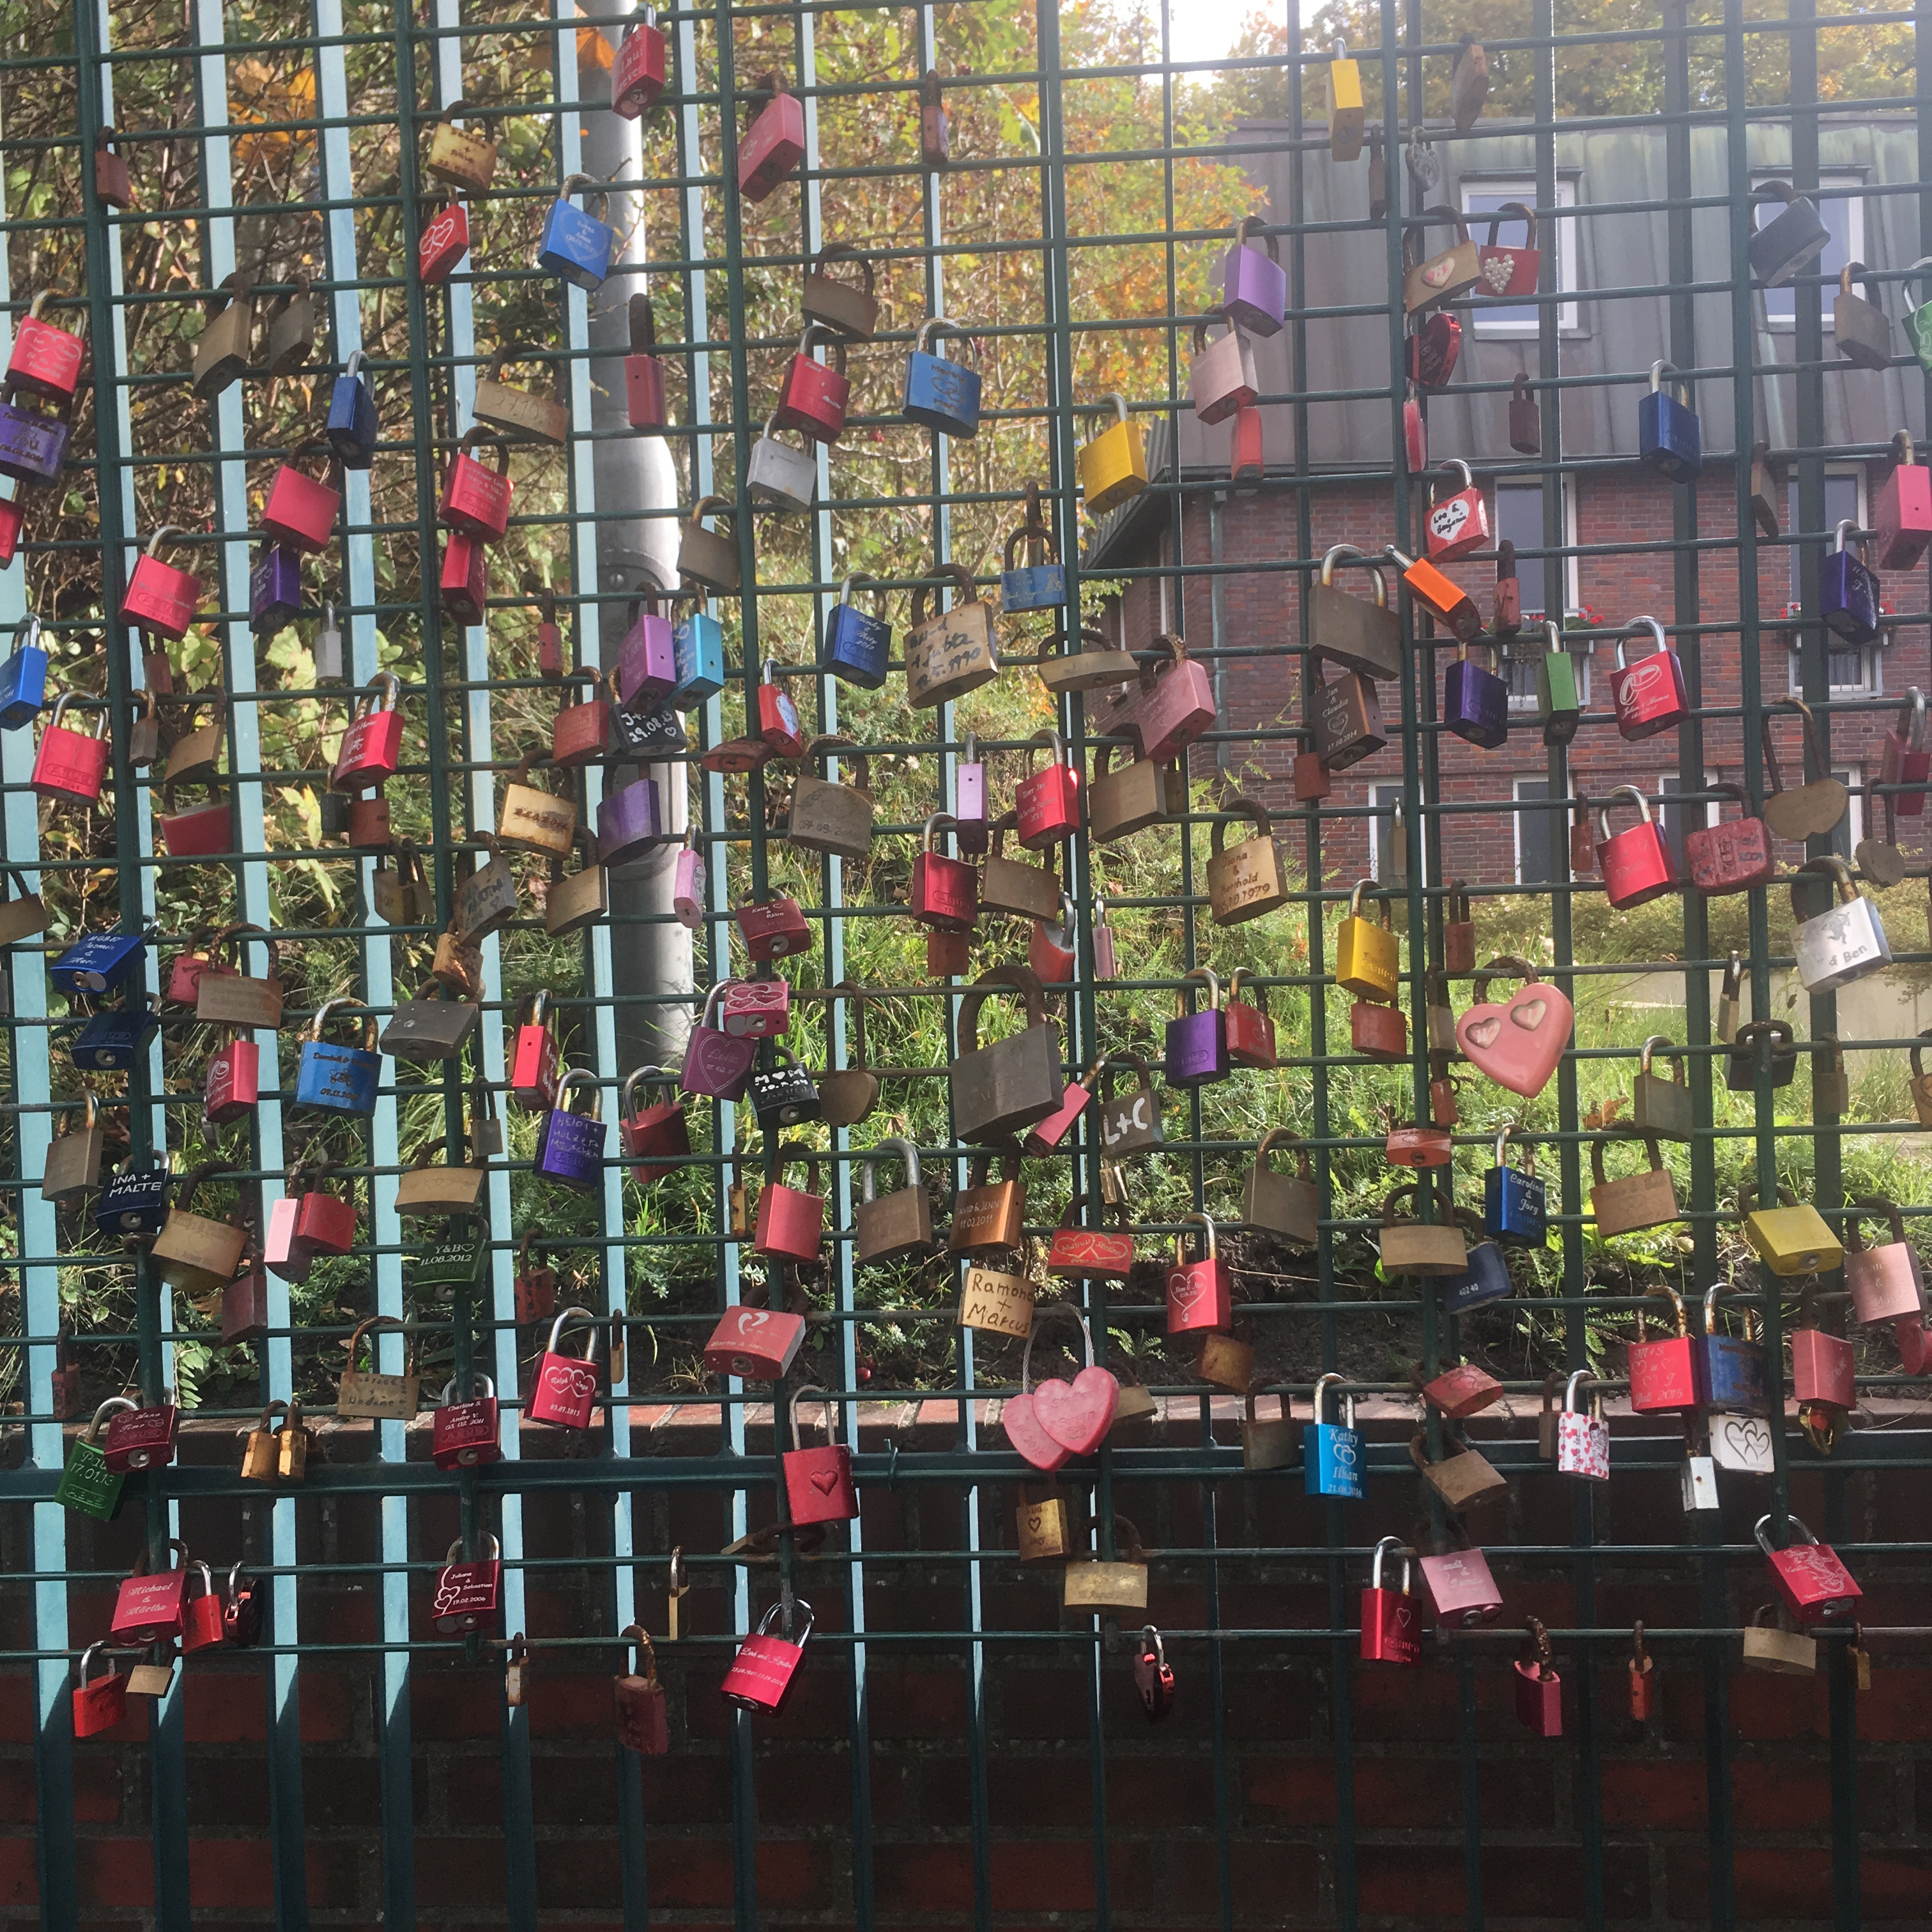 Things Helen Loves, Gate decorated with padlocks representing everlasting love